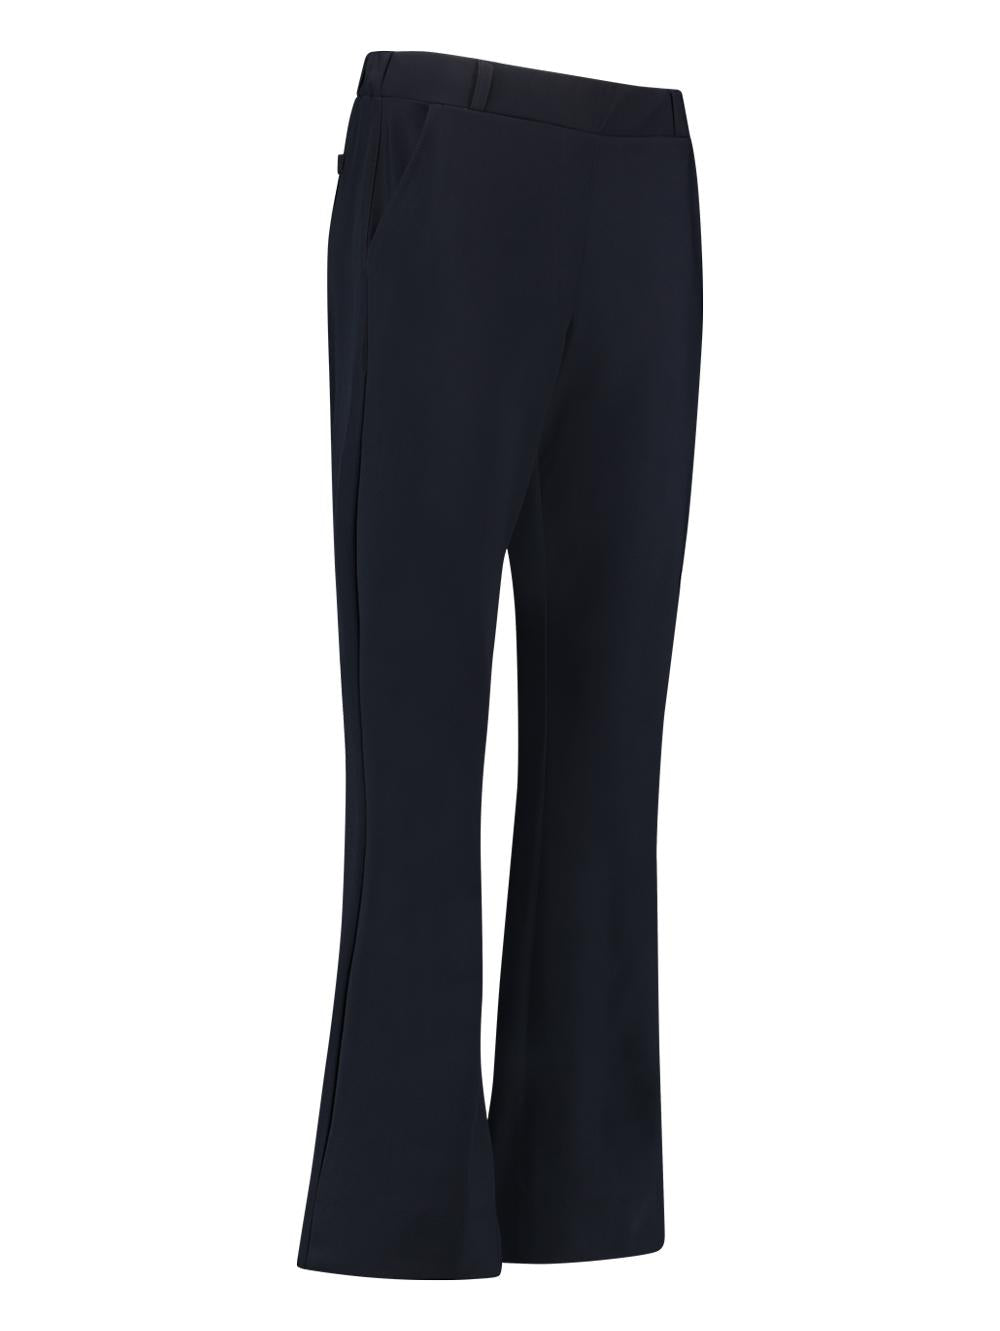 Studio Anneloes Flair LONG bonded trousers